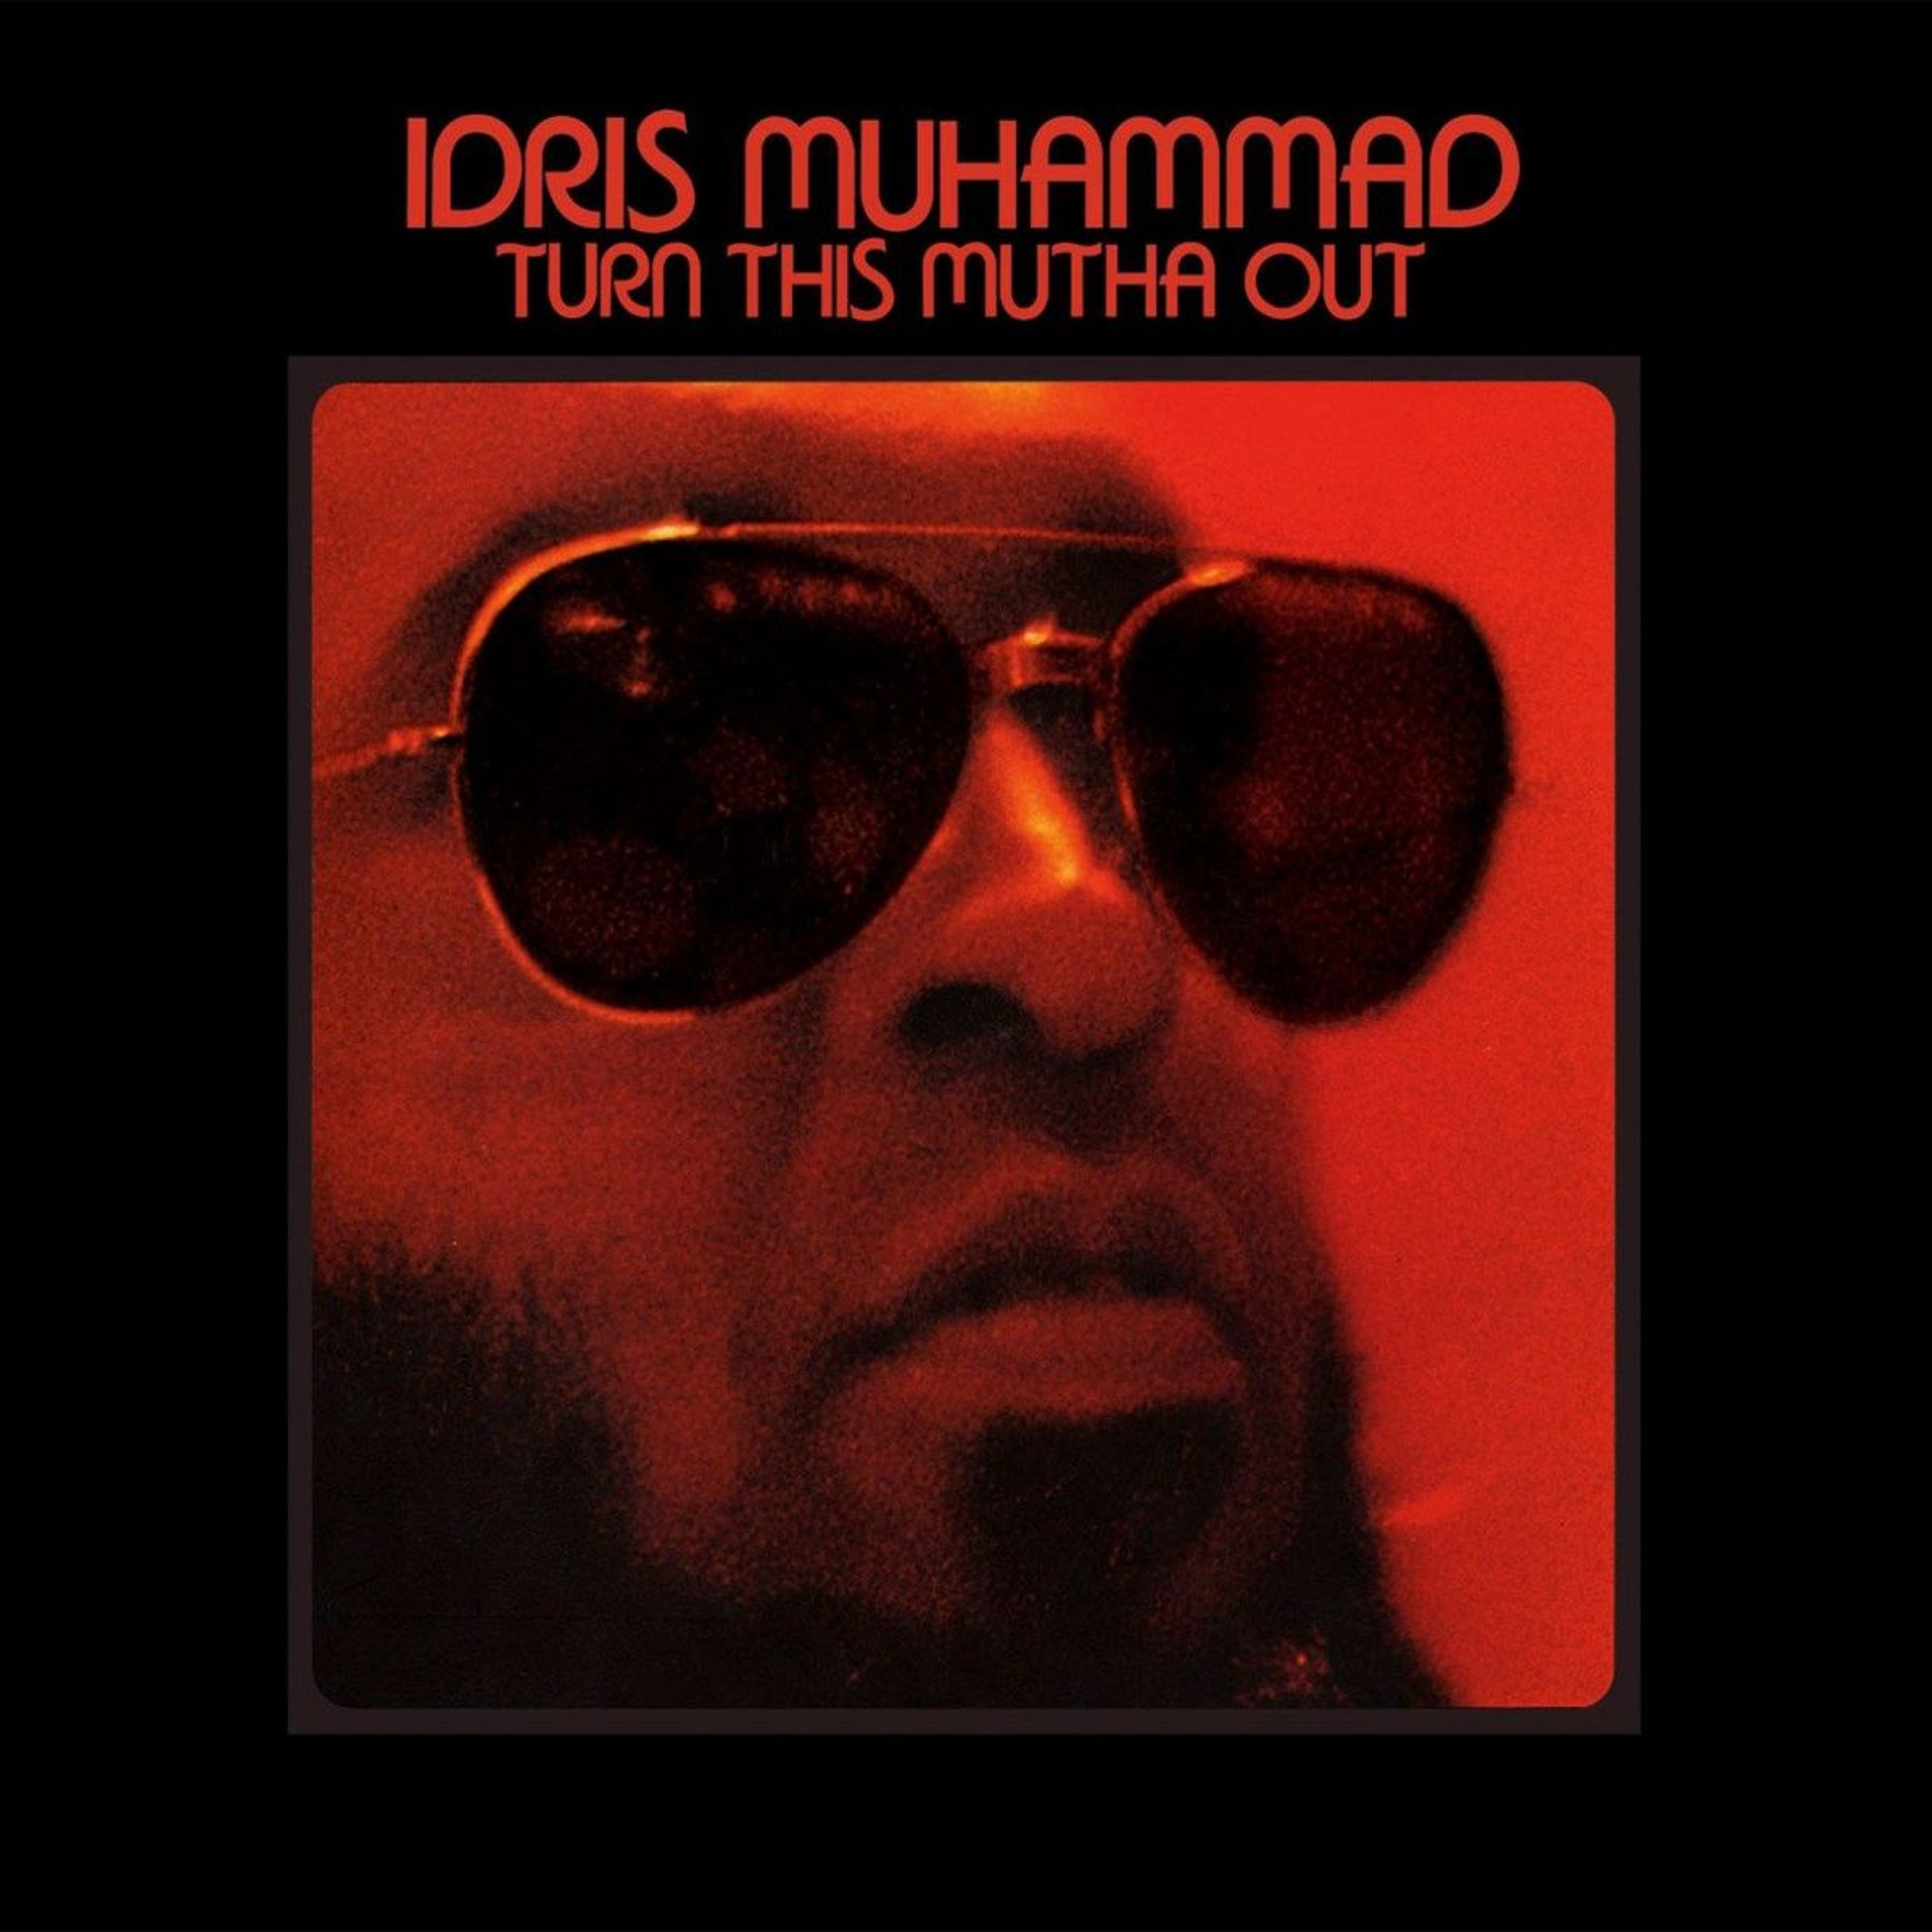 Idris Muhammad/TURN THIS MUTHA OUT LP